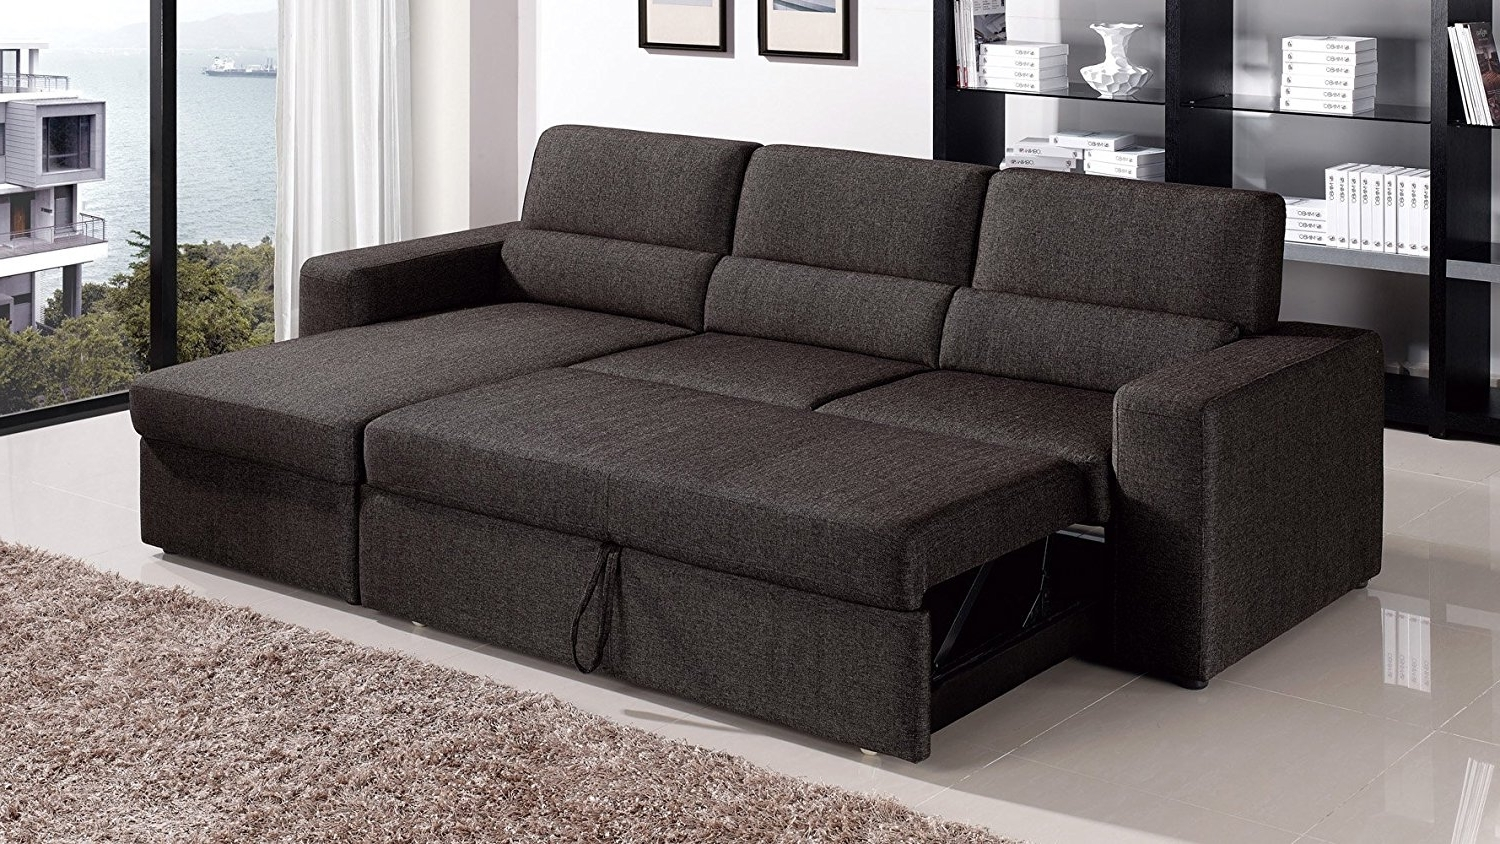 Well Known Sleeper Sofas With Storage Chaise Throughout Amazon: Black/brown Clubber Sleeper Sectional Sofa – Right (View 6 of 15)